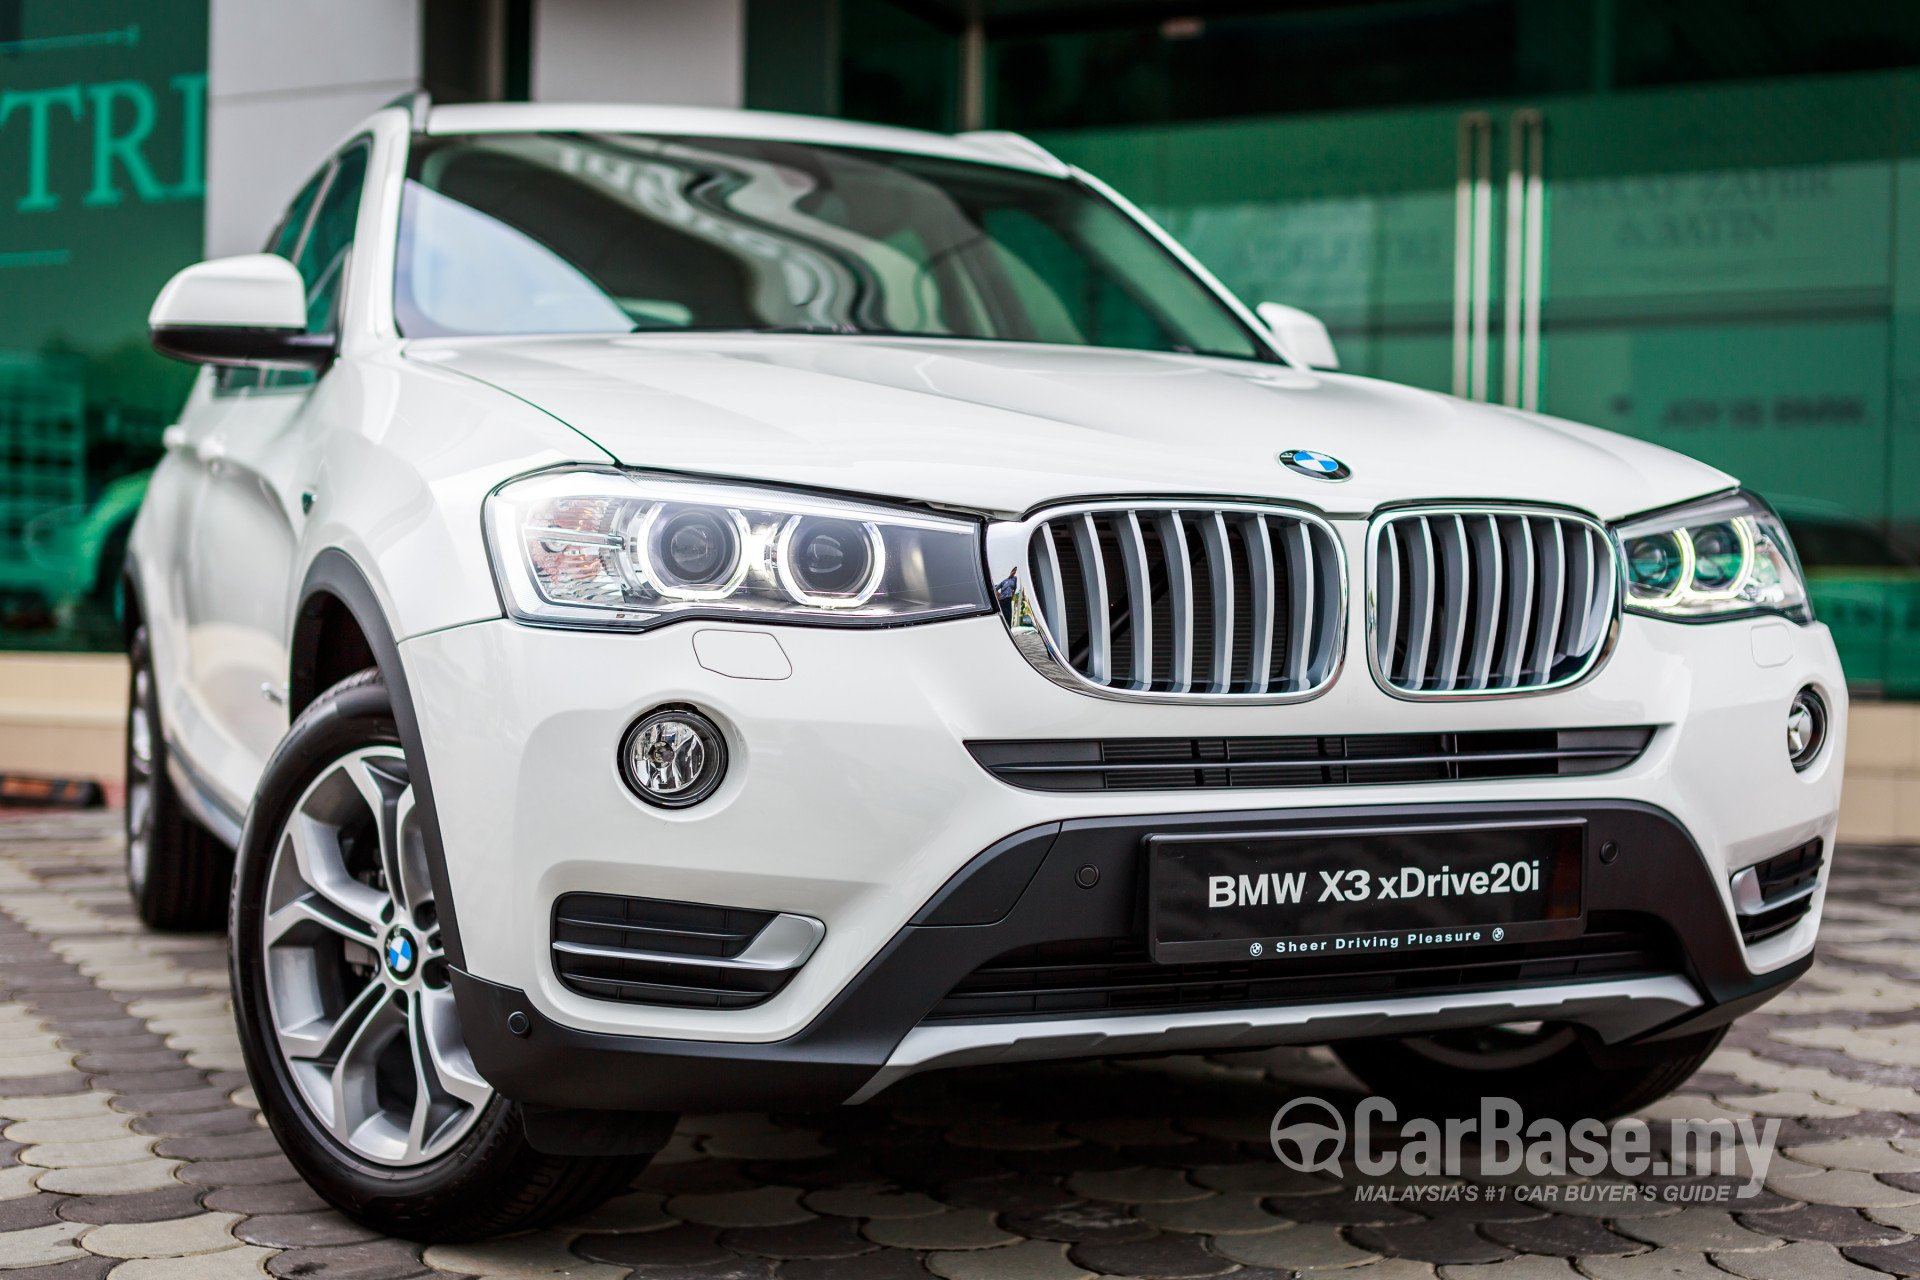 Bmw X3 F25 Lci 2014 Exterior Image 14828 In Malaysia Reviews Specs Prices